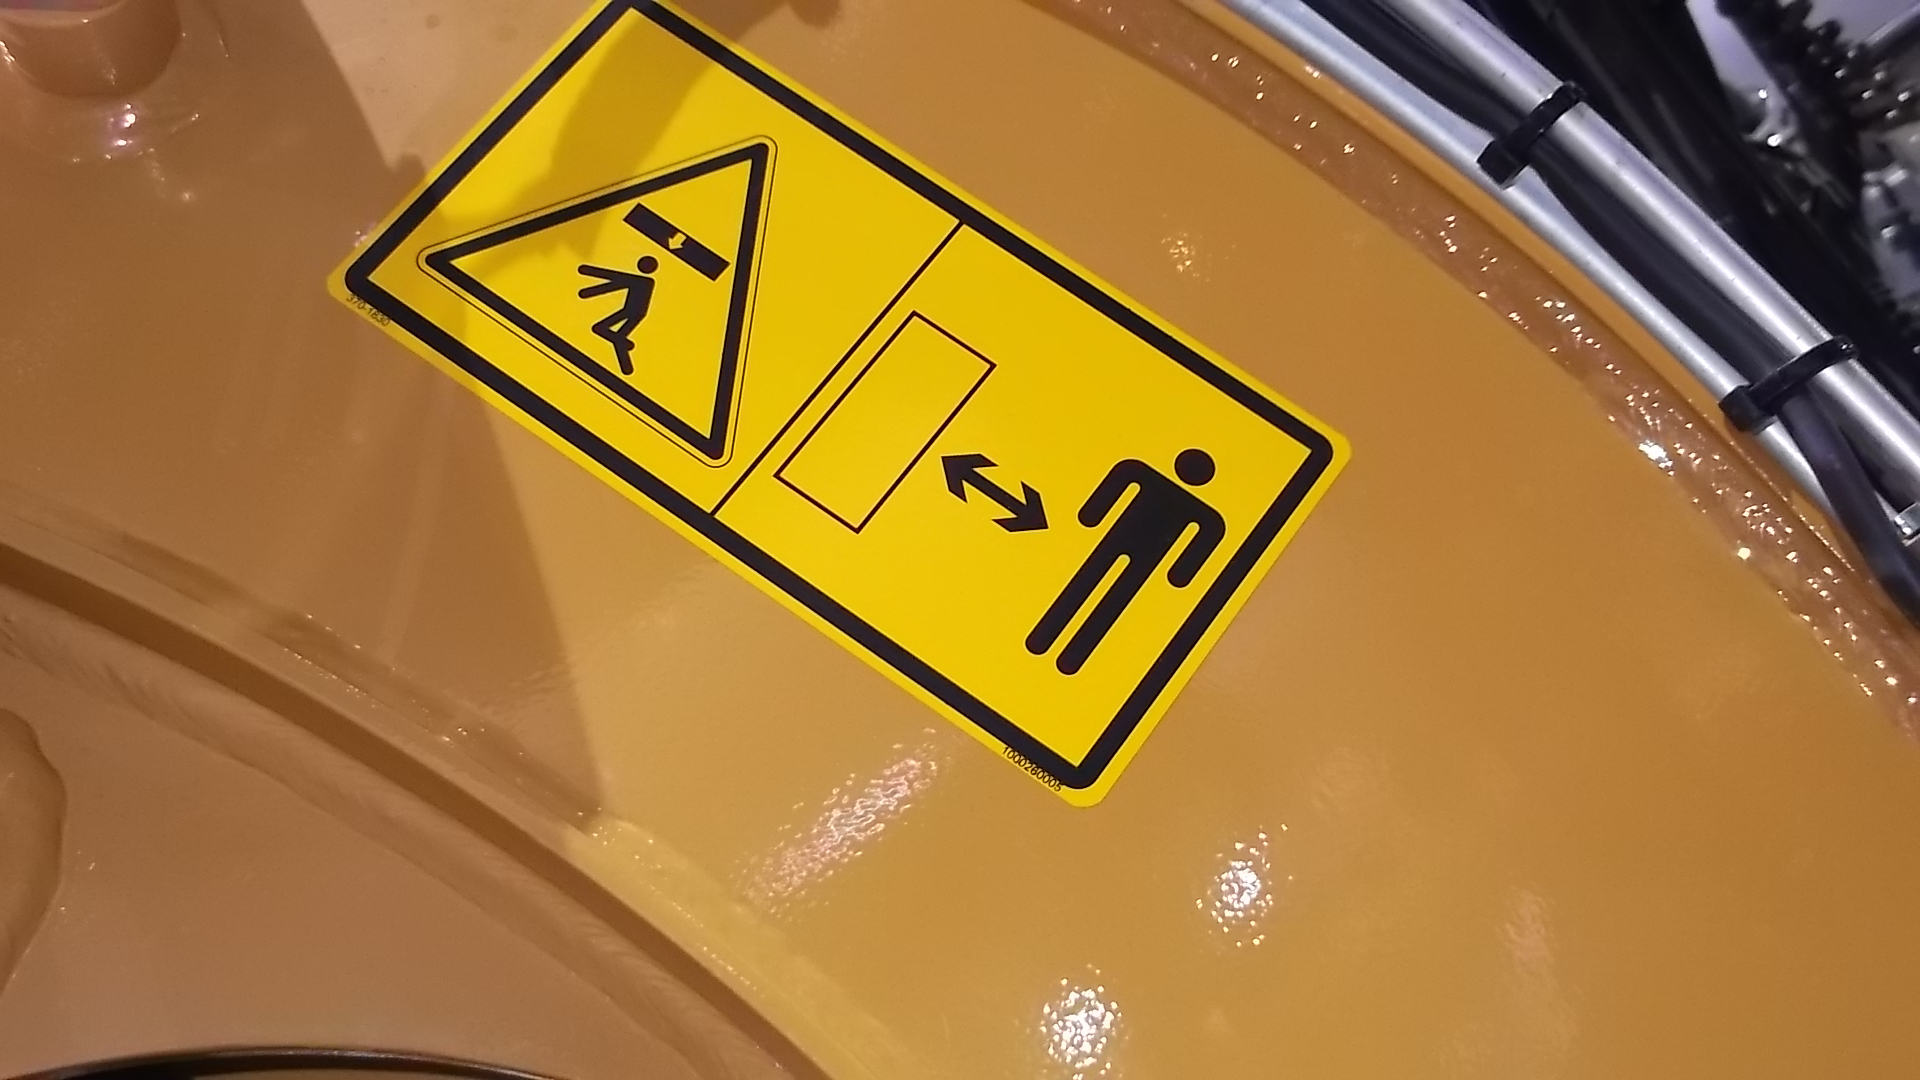 Safety Critical Decals